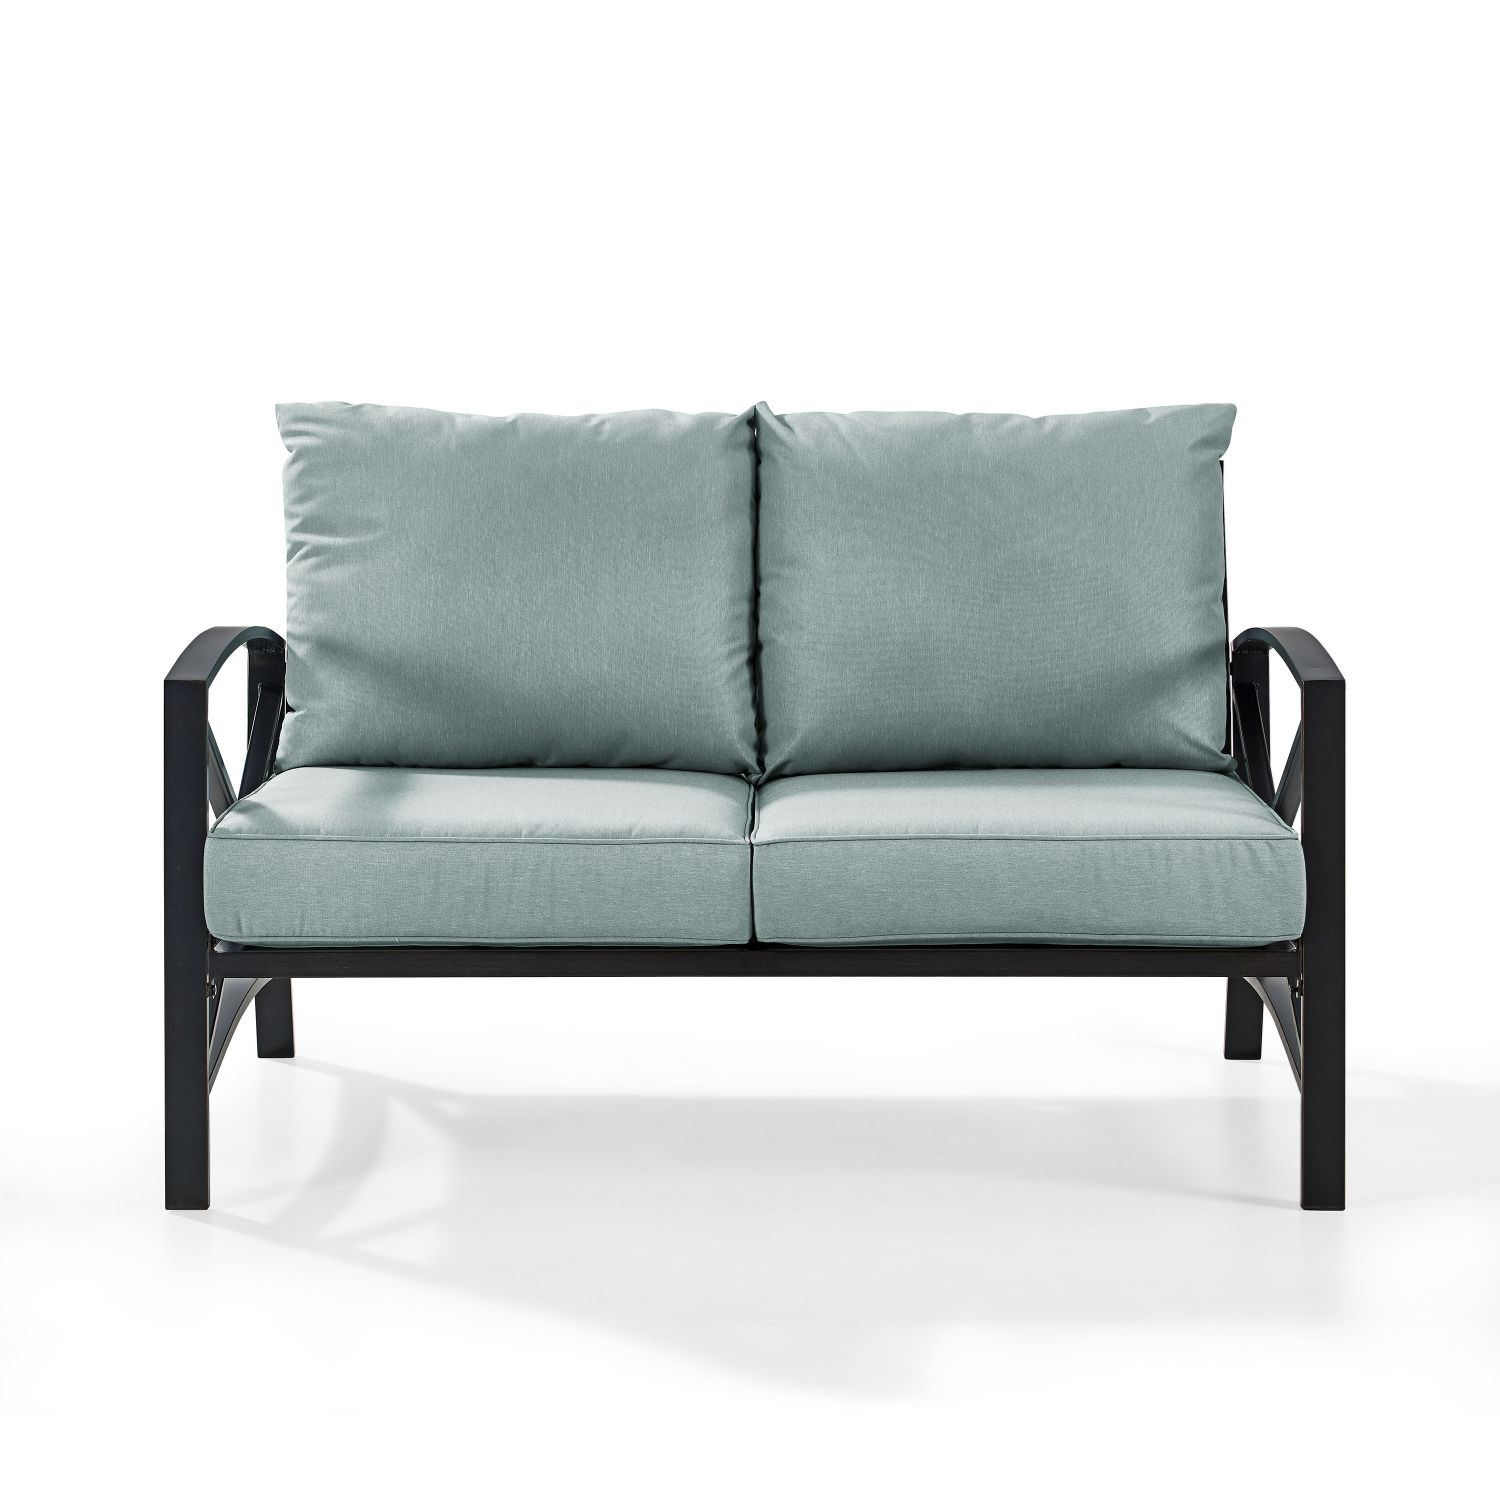 Picture of KAPLAN LOVESEAT IN OILED BRONZE WITH MIST UNIVERSA